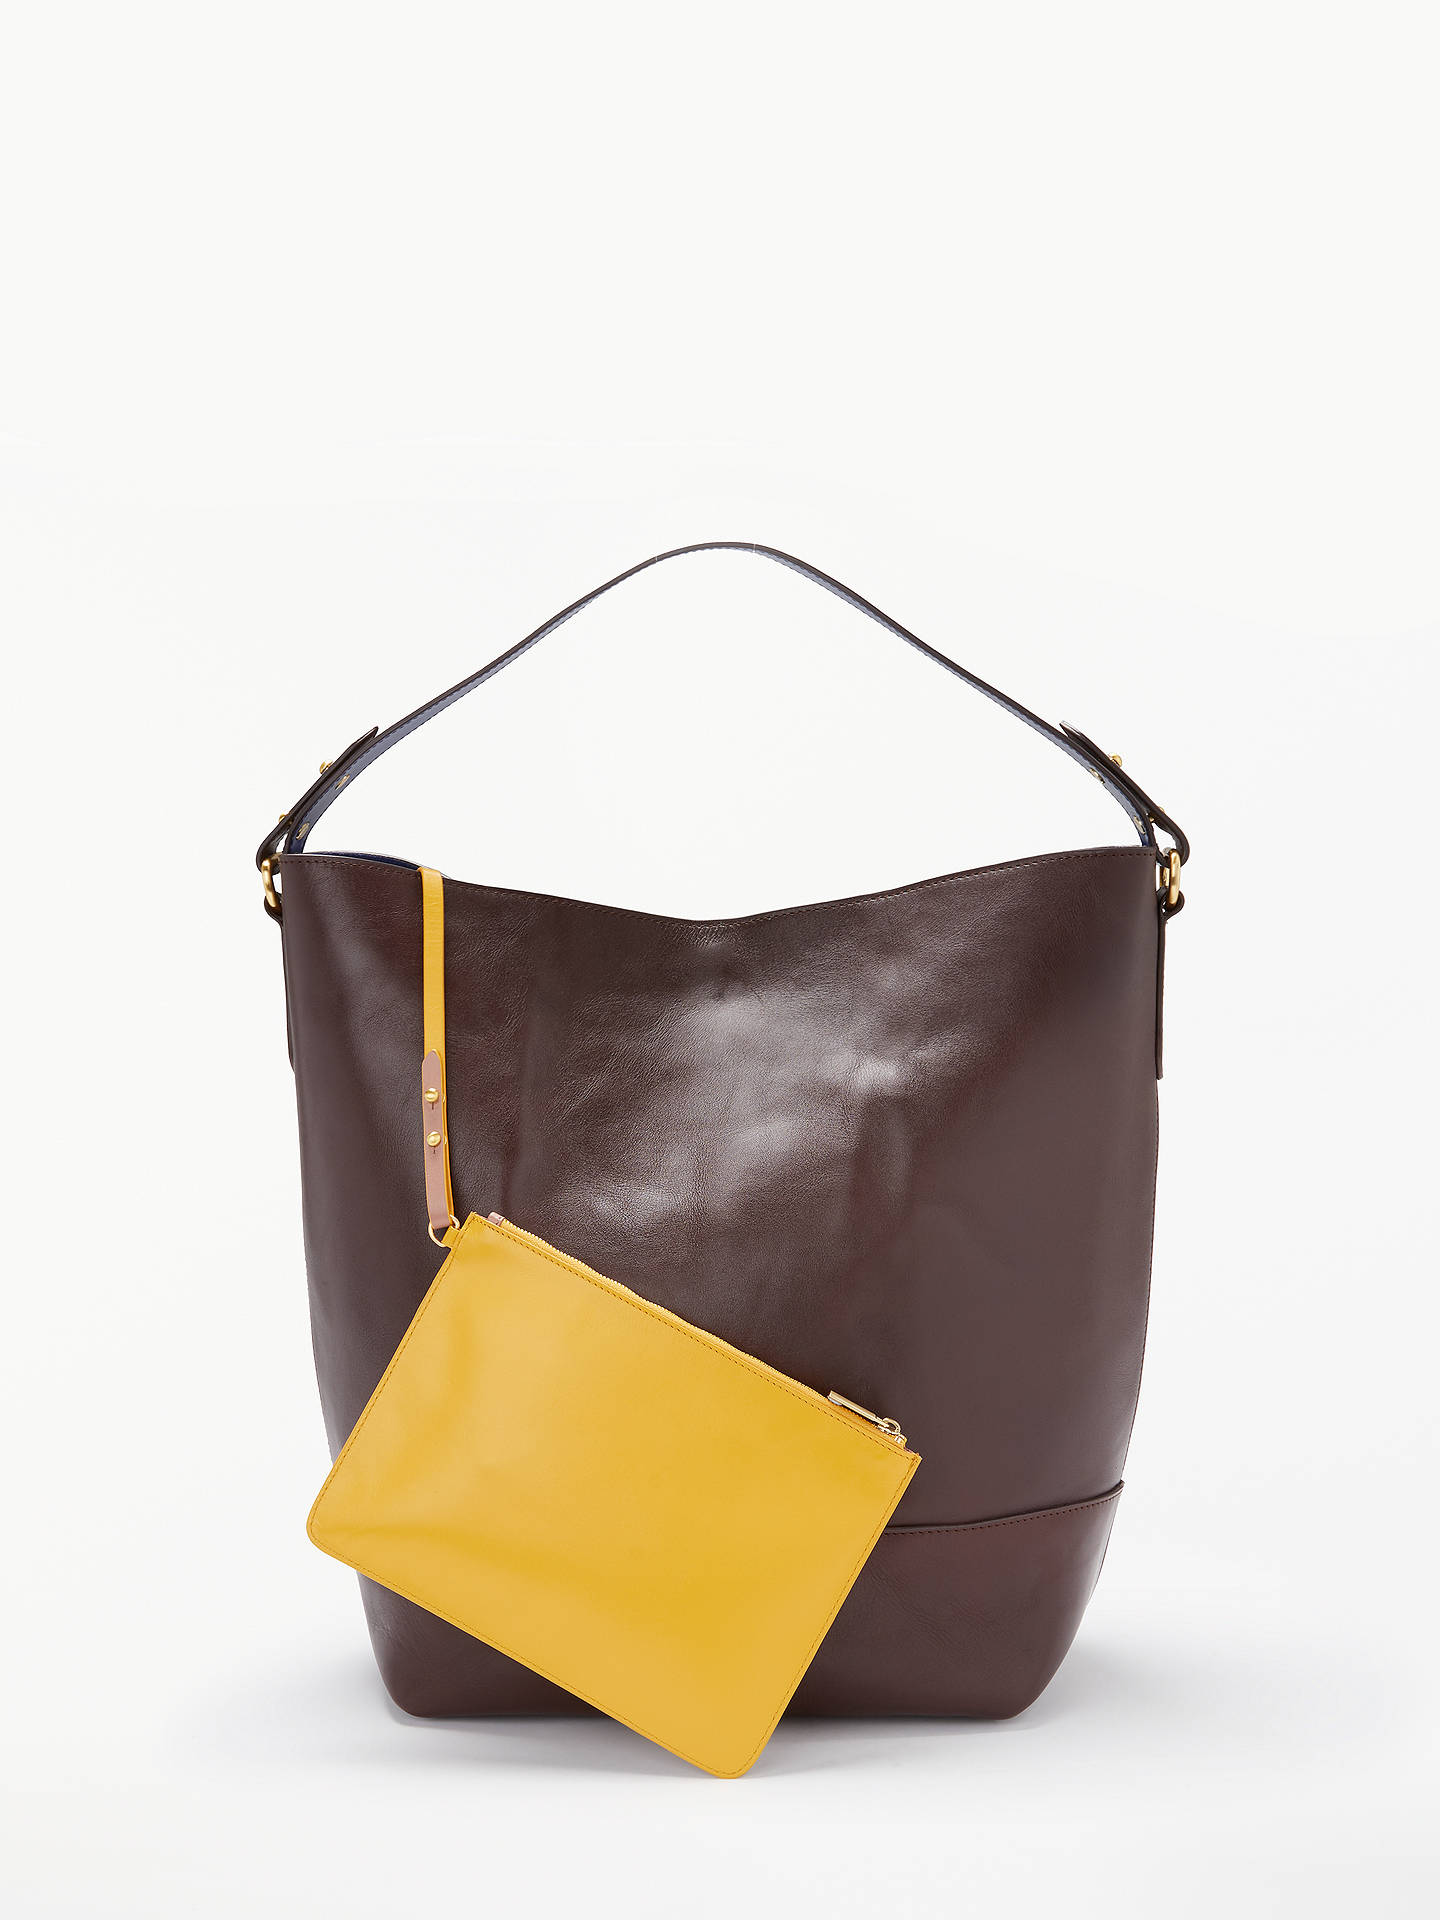 423cc1b817 ... Buy John Lewis & Partners Sawyer Leather Large Contrast Colour Tote Bag,  Chestnut Online at